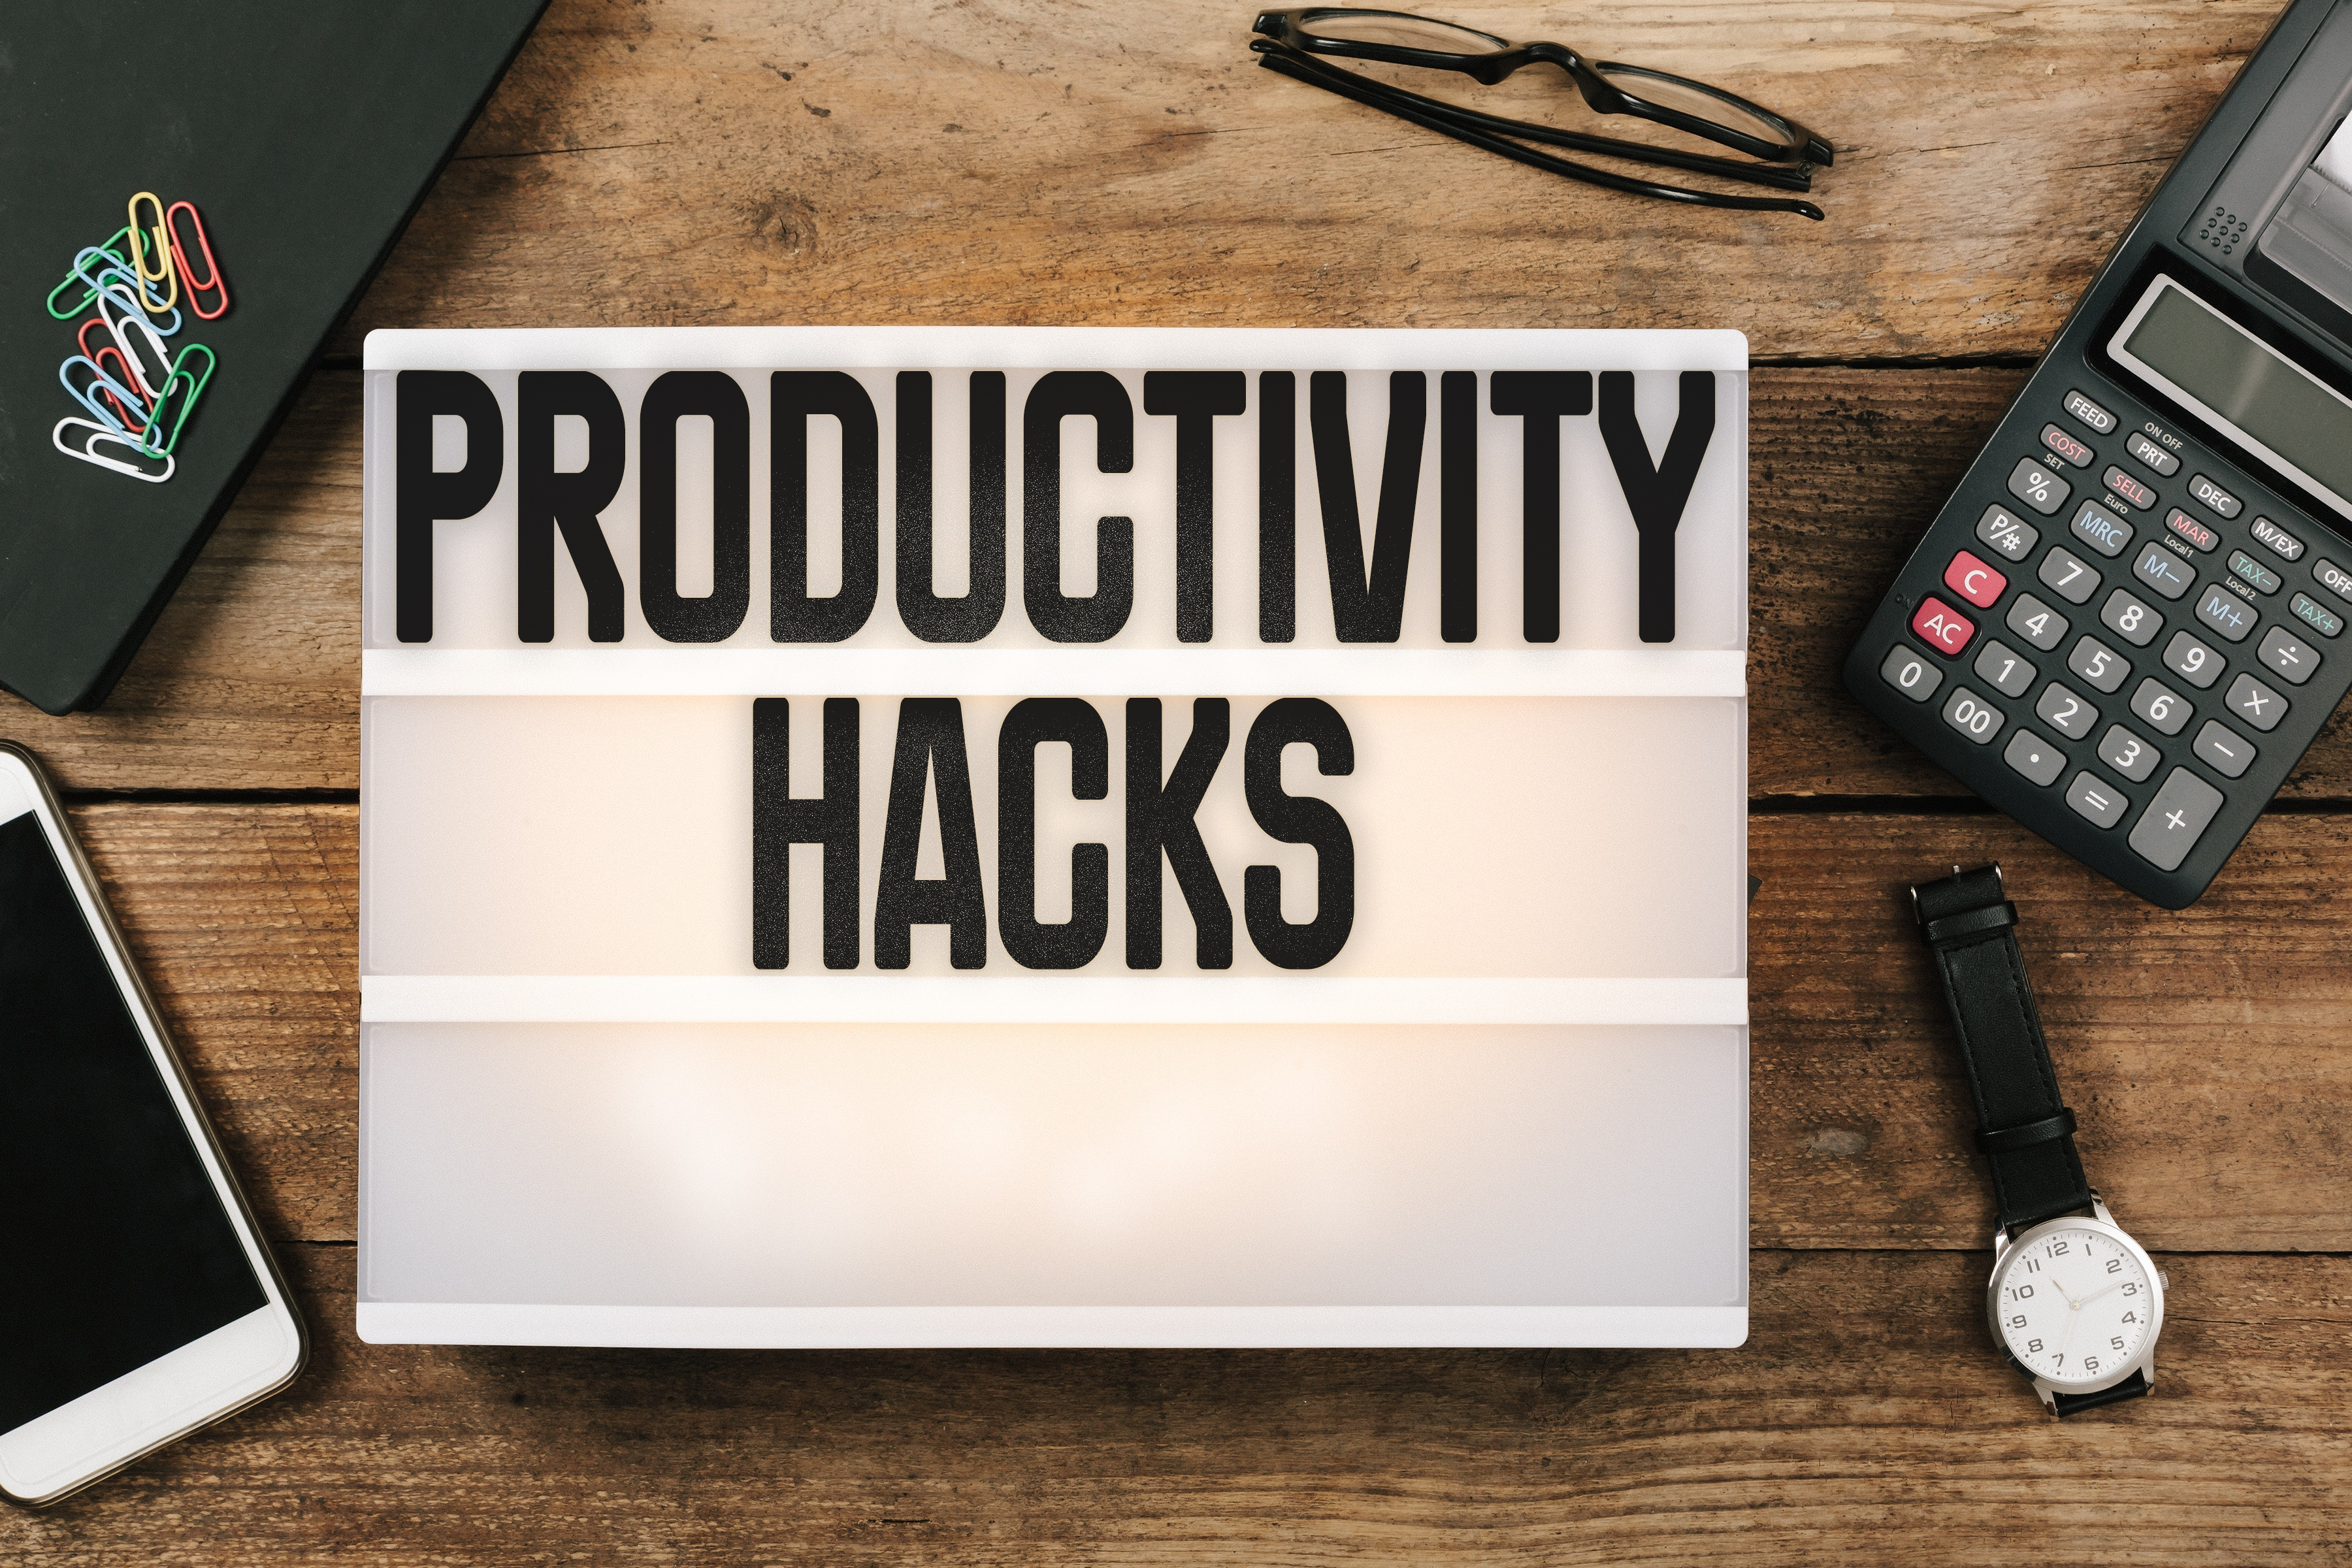 Top 10 Productivity Hacks for Small Business